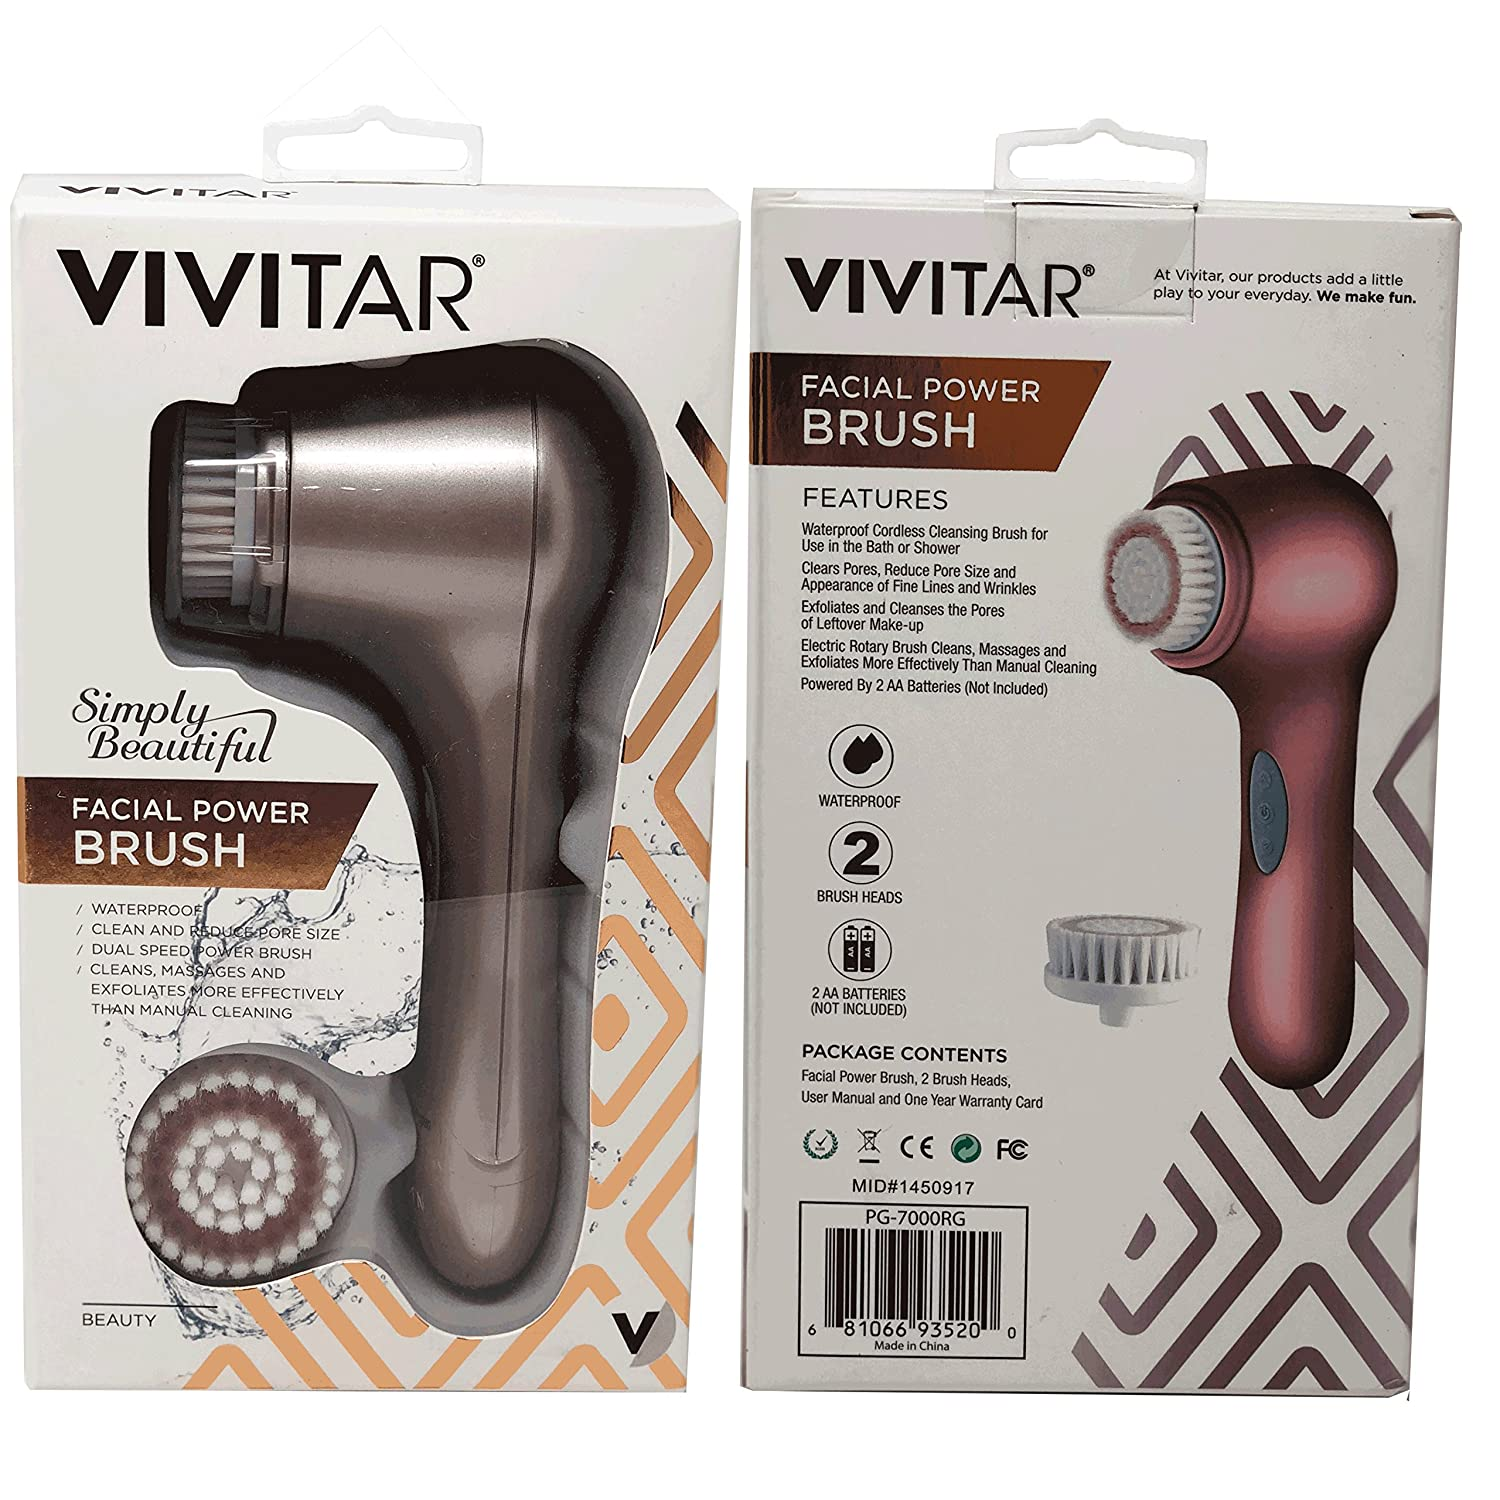 373f39dc453eec Amazon.com: Vivitar Exfoliating Cleansing Brush: Power Facial Brush for Men  & Women| Waterproof Electric Face Brush + 2 Brush Heads| Minimize Pores, ...